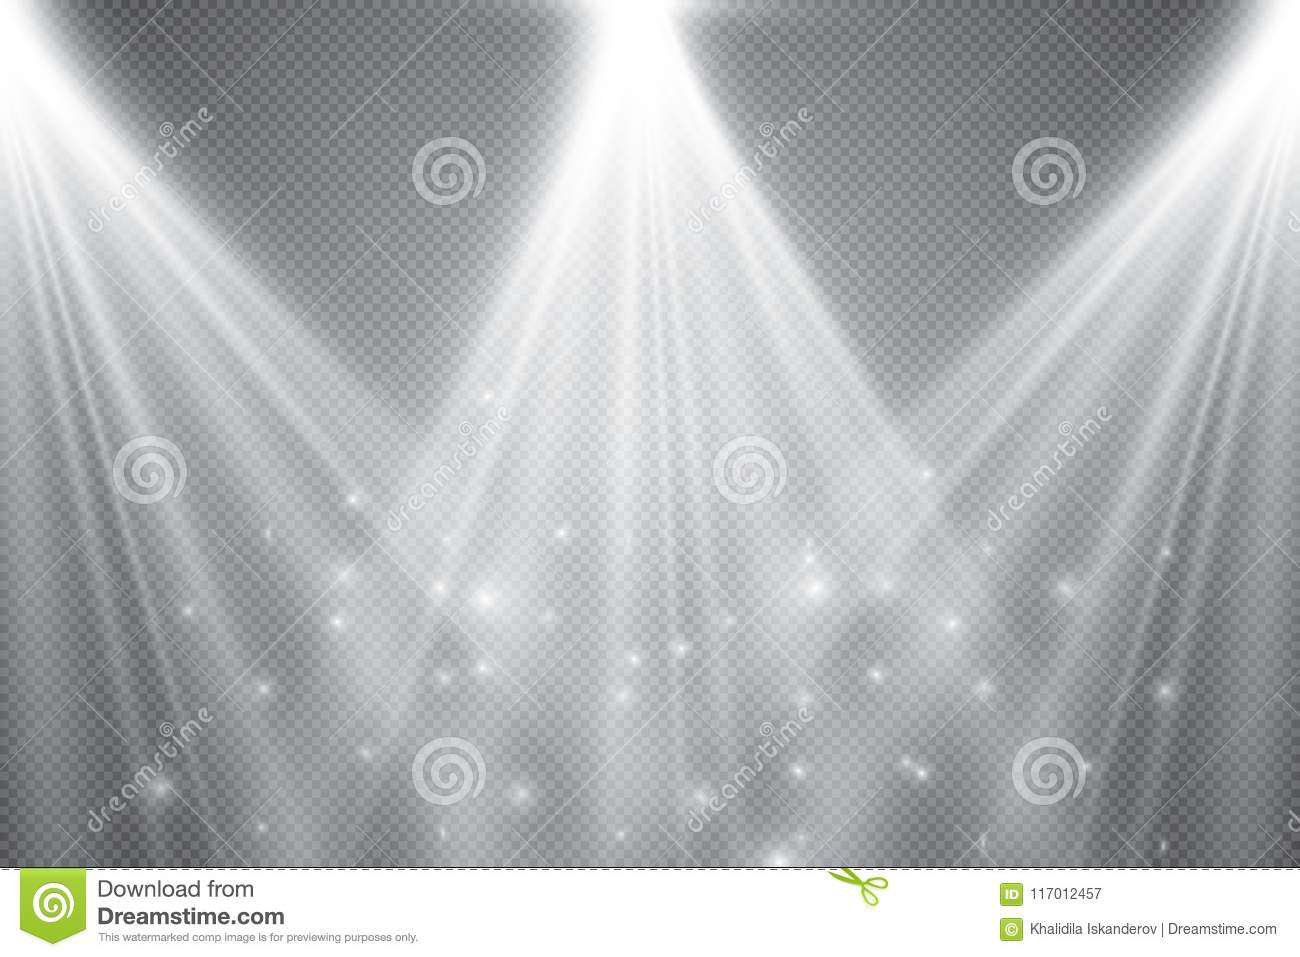 Stage Lighting Transparent Effects Bright Lighting With Spotlights